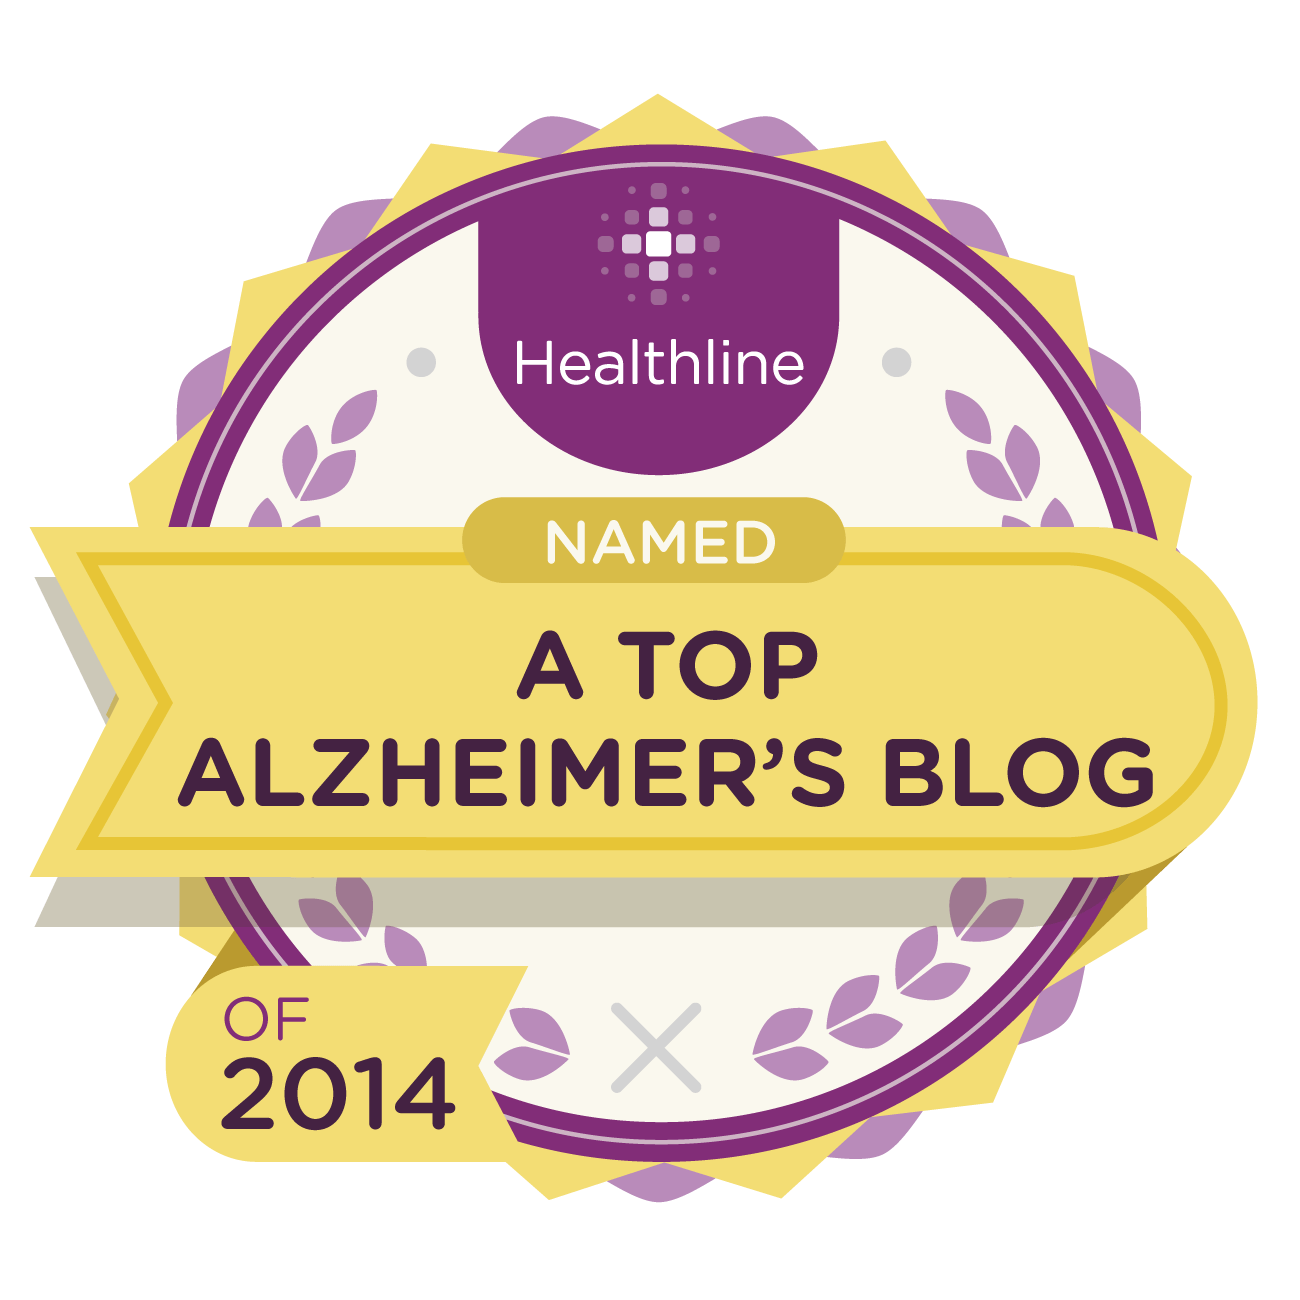 The 25 Best Alzheimer's Blogs of 2014